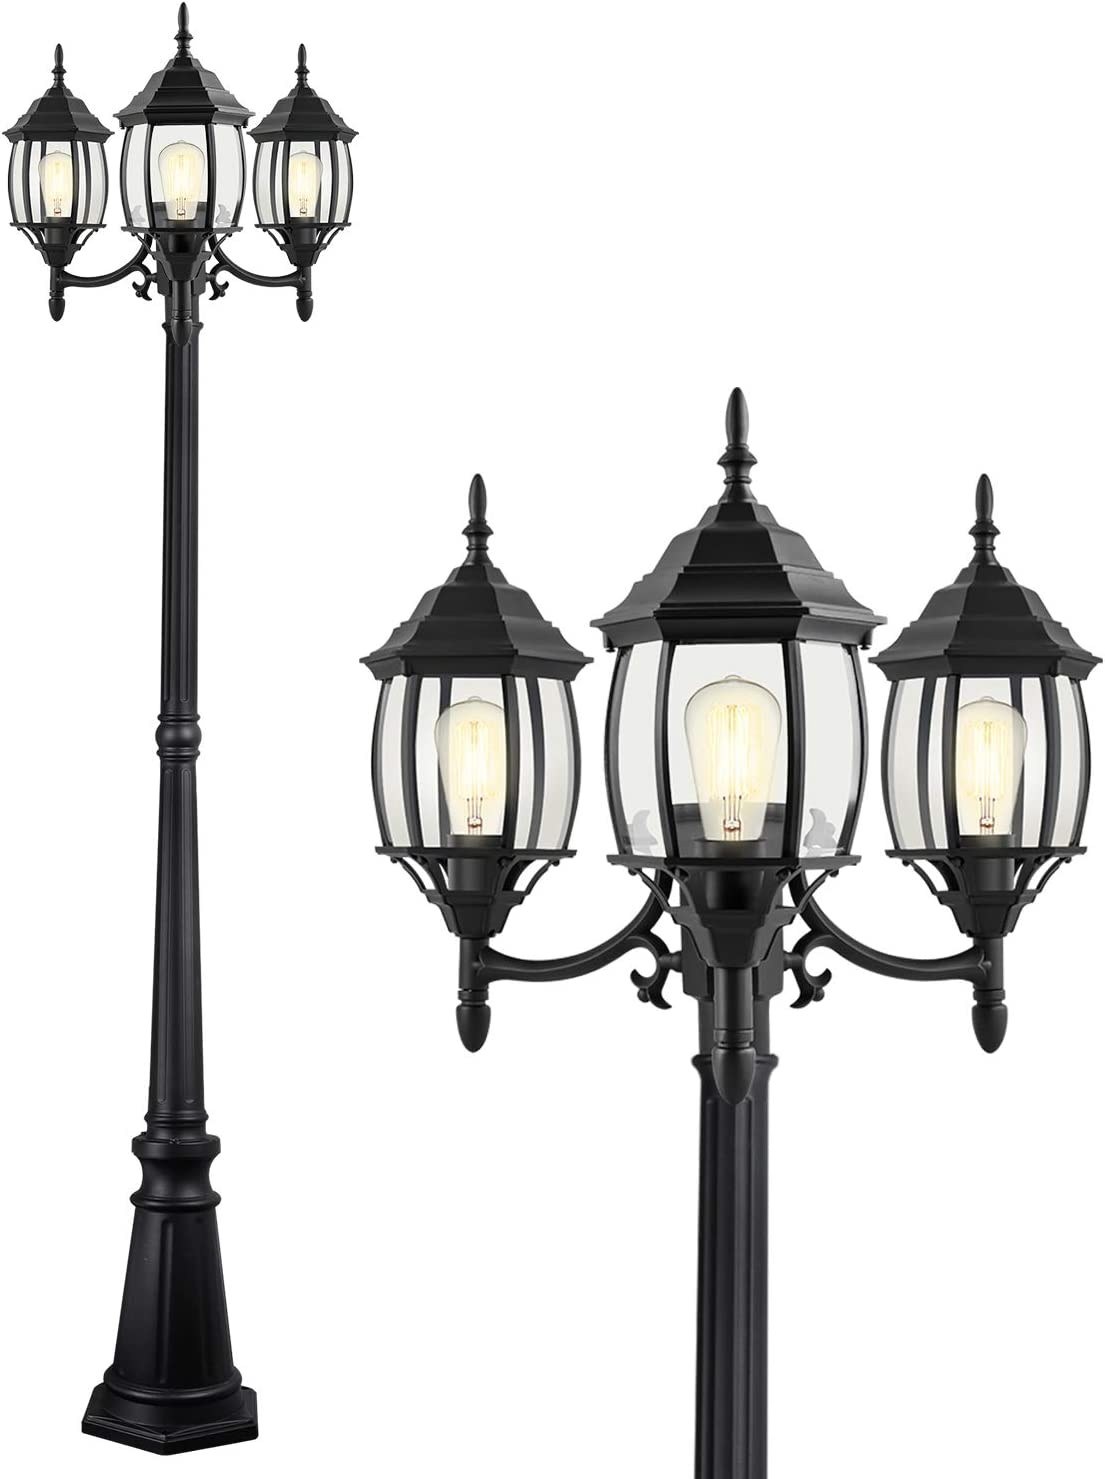 PARTPHONER Outdoor Lamp Post Light 3-Head, Classic Black Light Pole with Clear Glass Panels, E26 Base Maximum 100W ( 3 LED Bulbs Included ), Waterproof Street Light for Backyard, Garden, Driveway